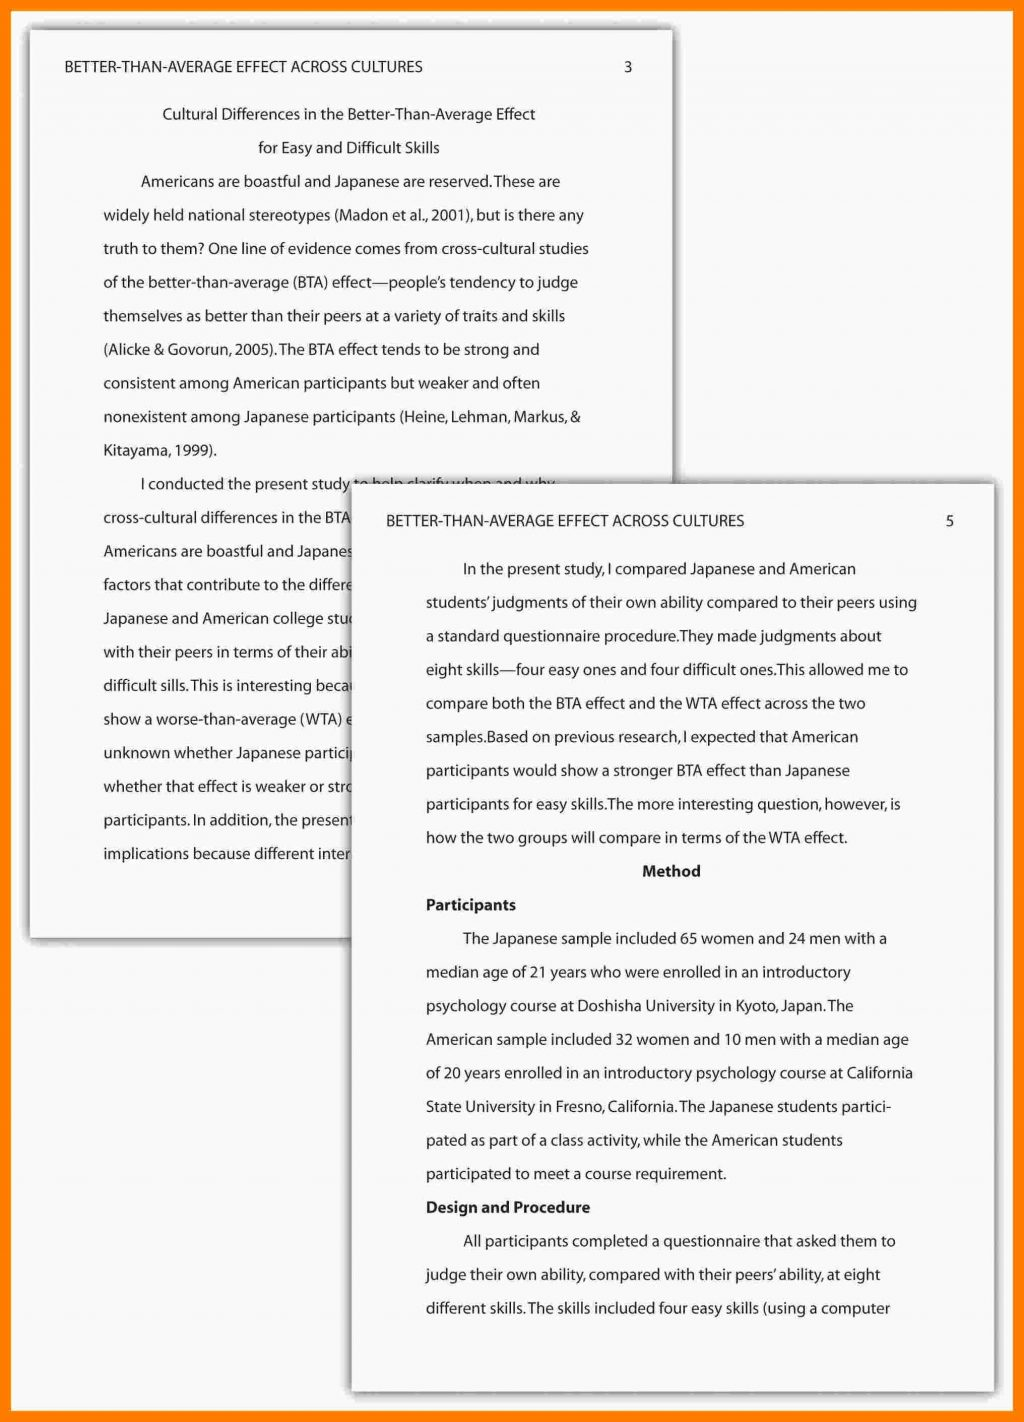 008 Research Paper Medical Outline Template Apa Style Example Teller Resume Formatarch Papers In Non Singular Full